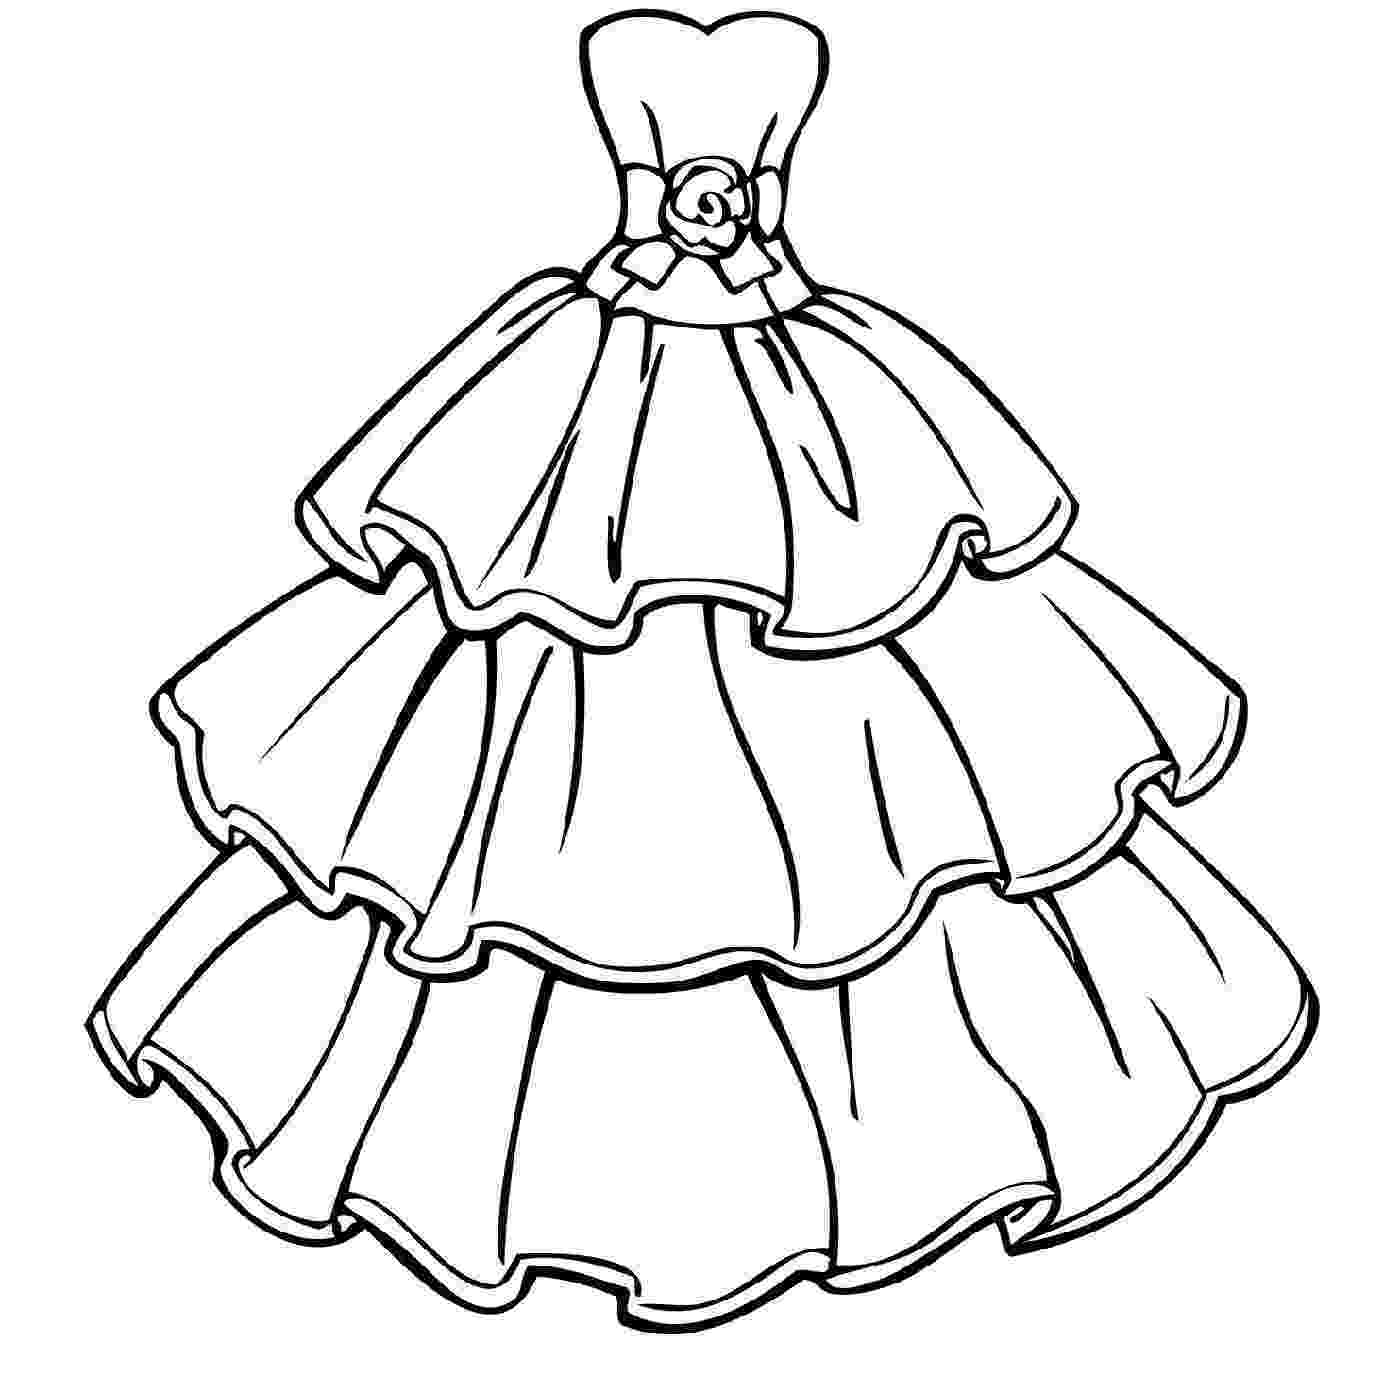 coloring pages of dresses wedding dress coloring pages coloring home of pages dresses coloring